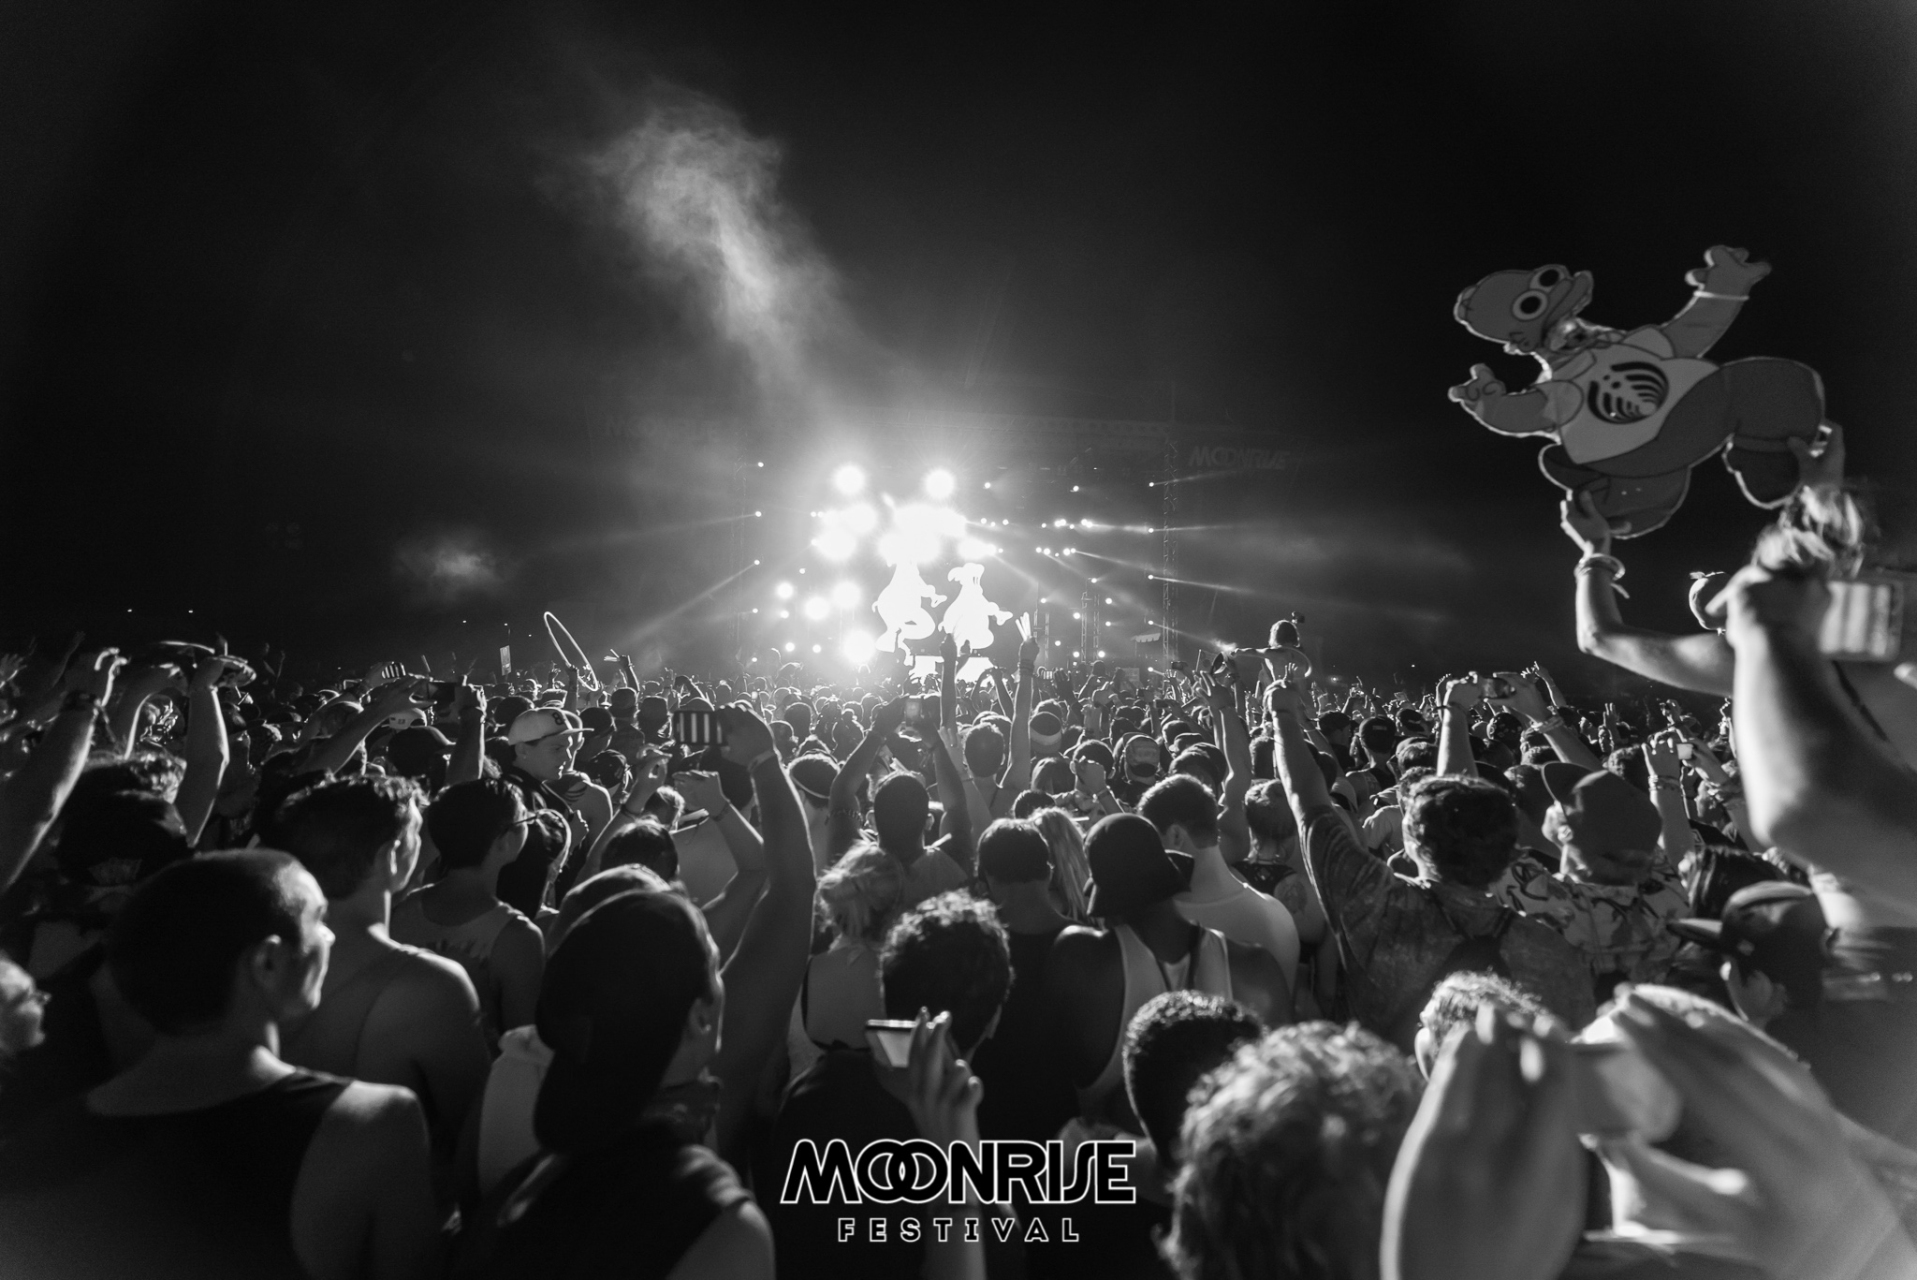 Moonrise_day2-48